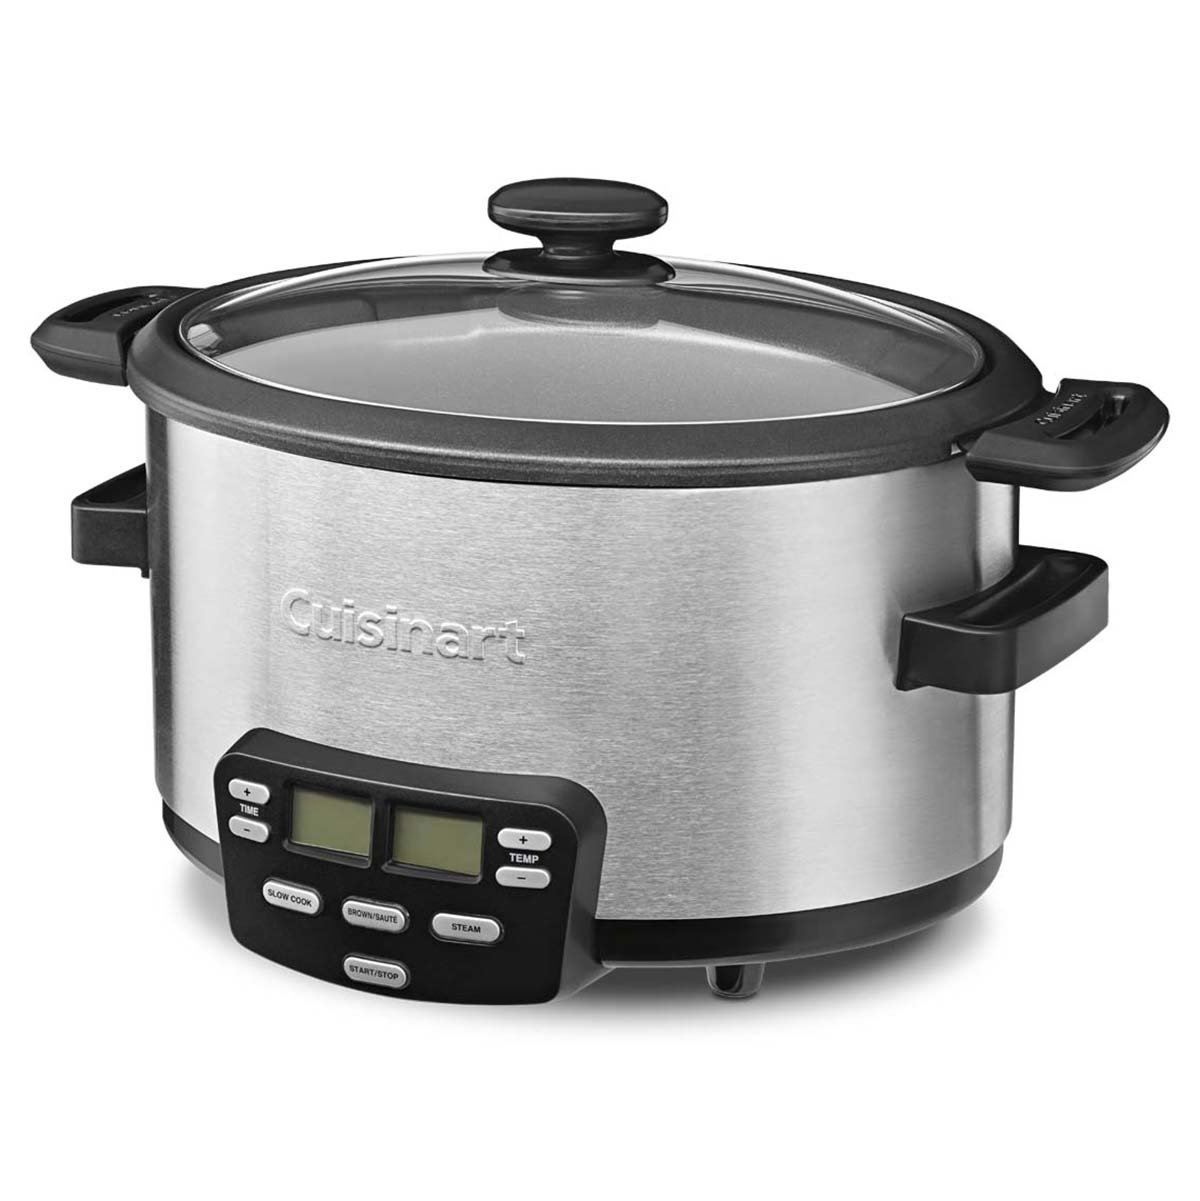 Cuisinart 4 Quart Cook Central Programmable Slow Cooker (Certified Refurbished)